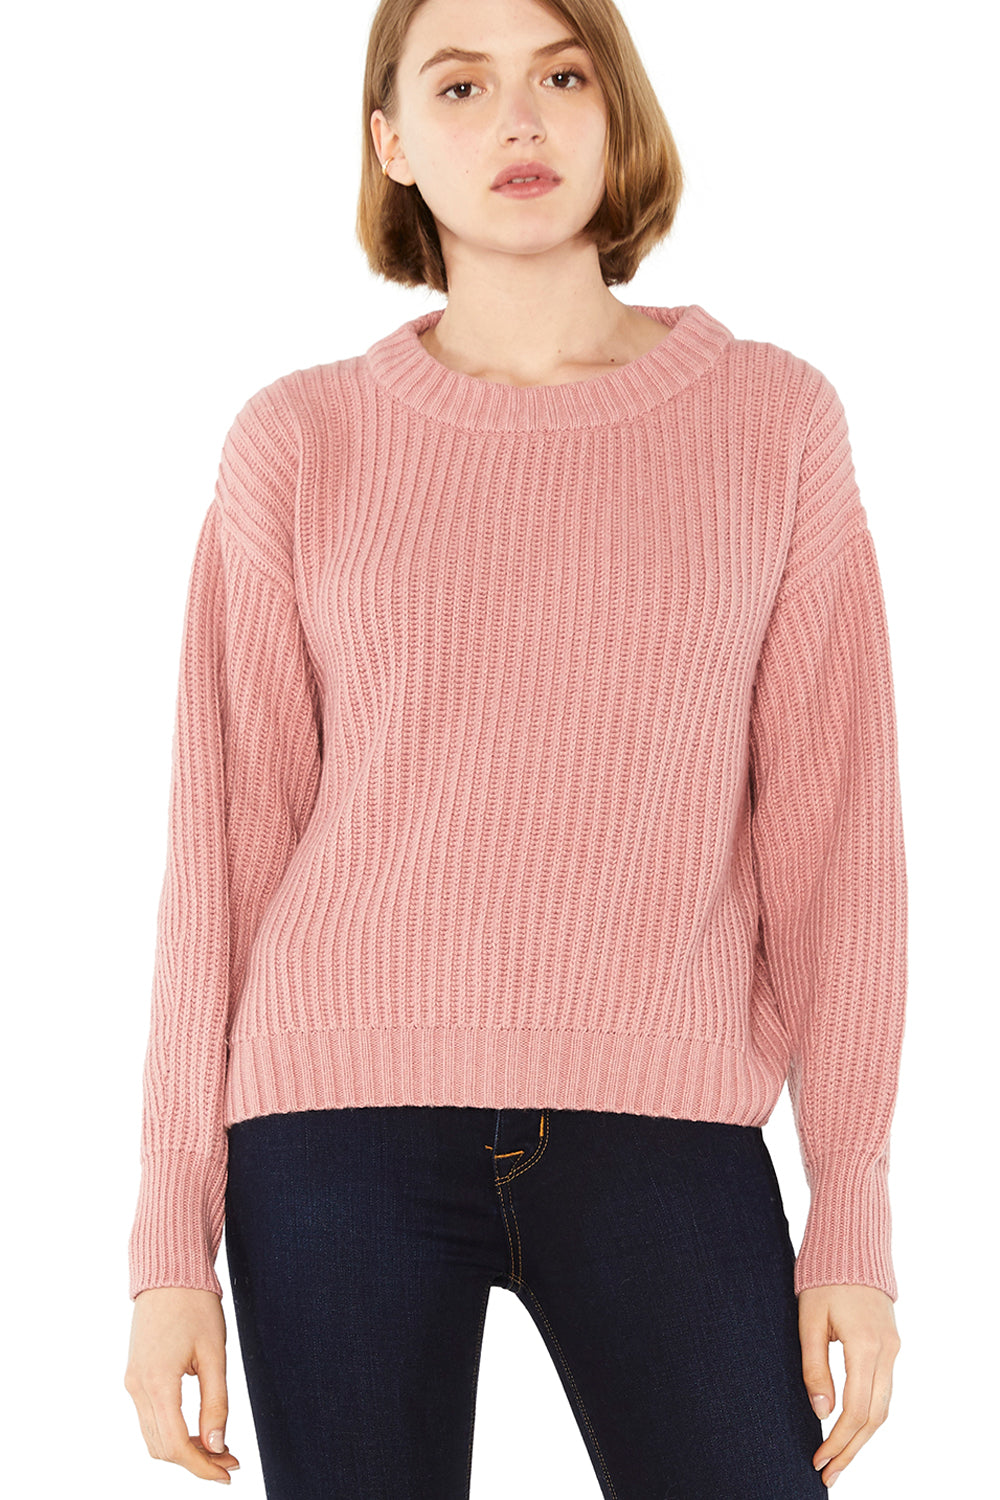 JAMISON SWEATER - MISA Los Angeles